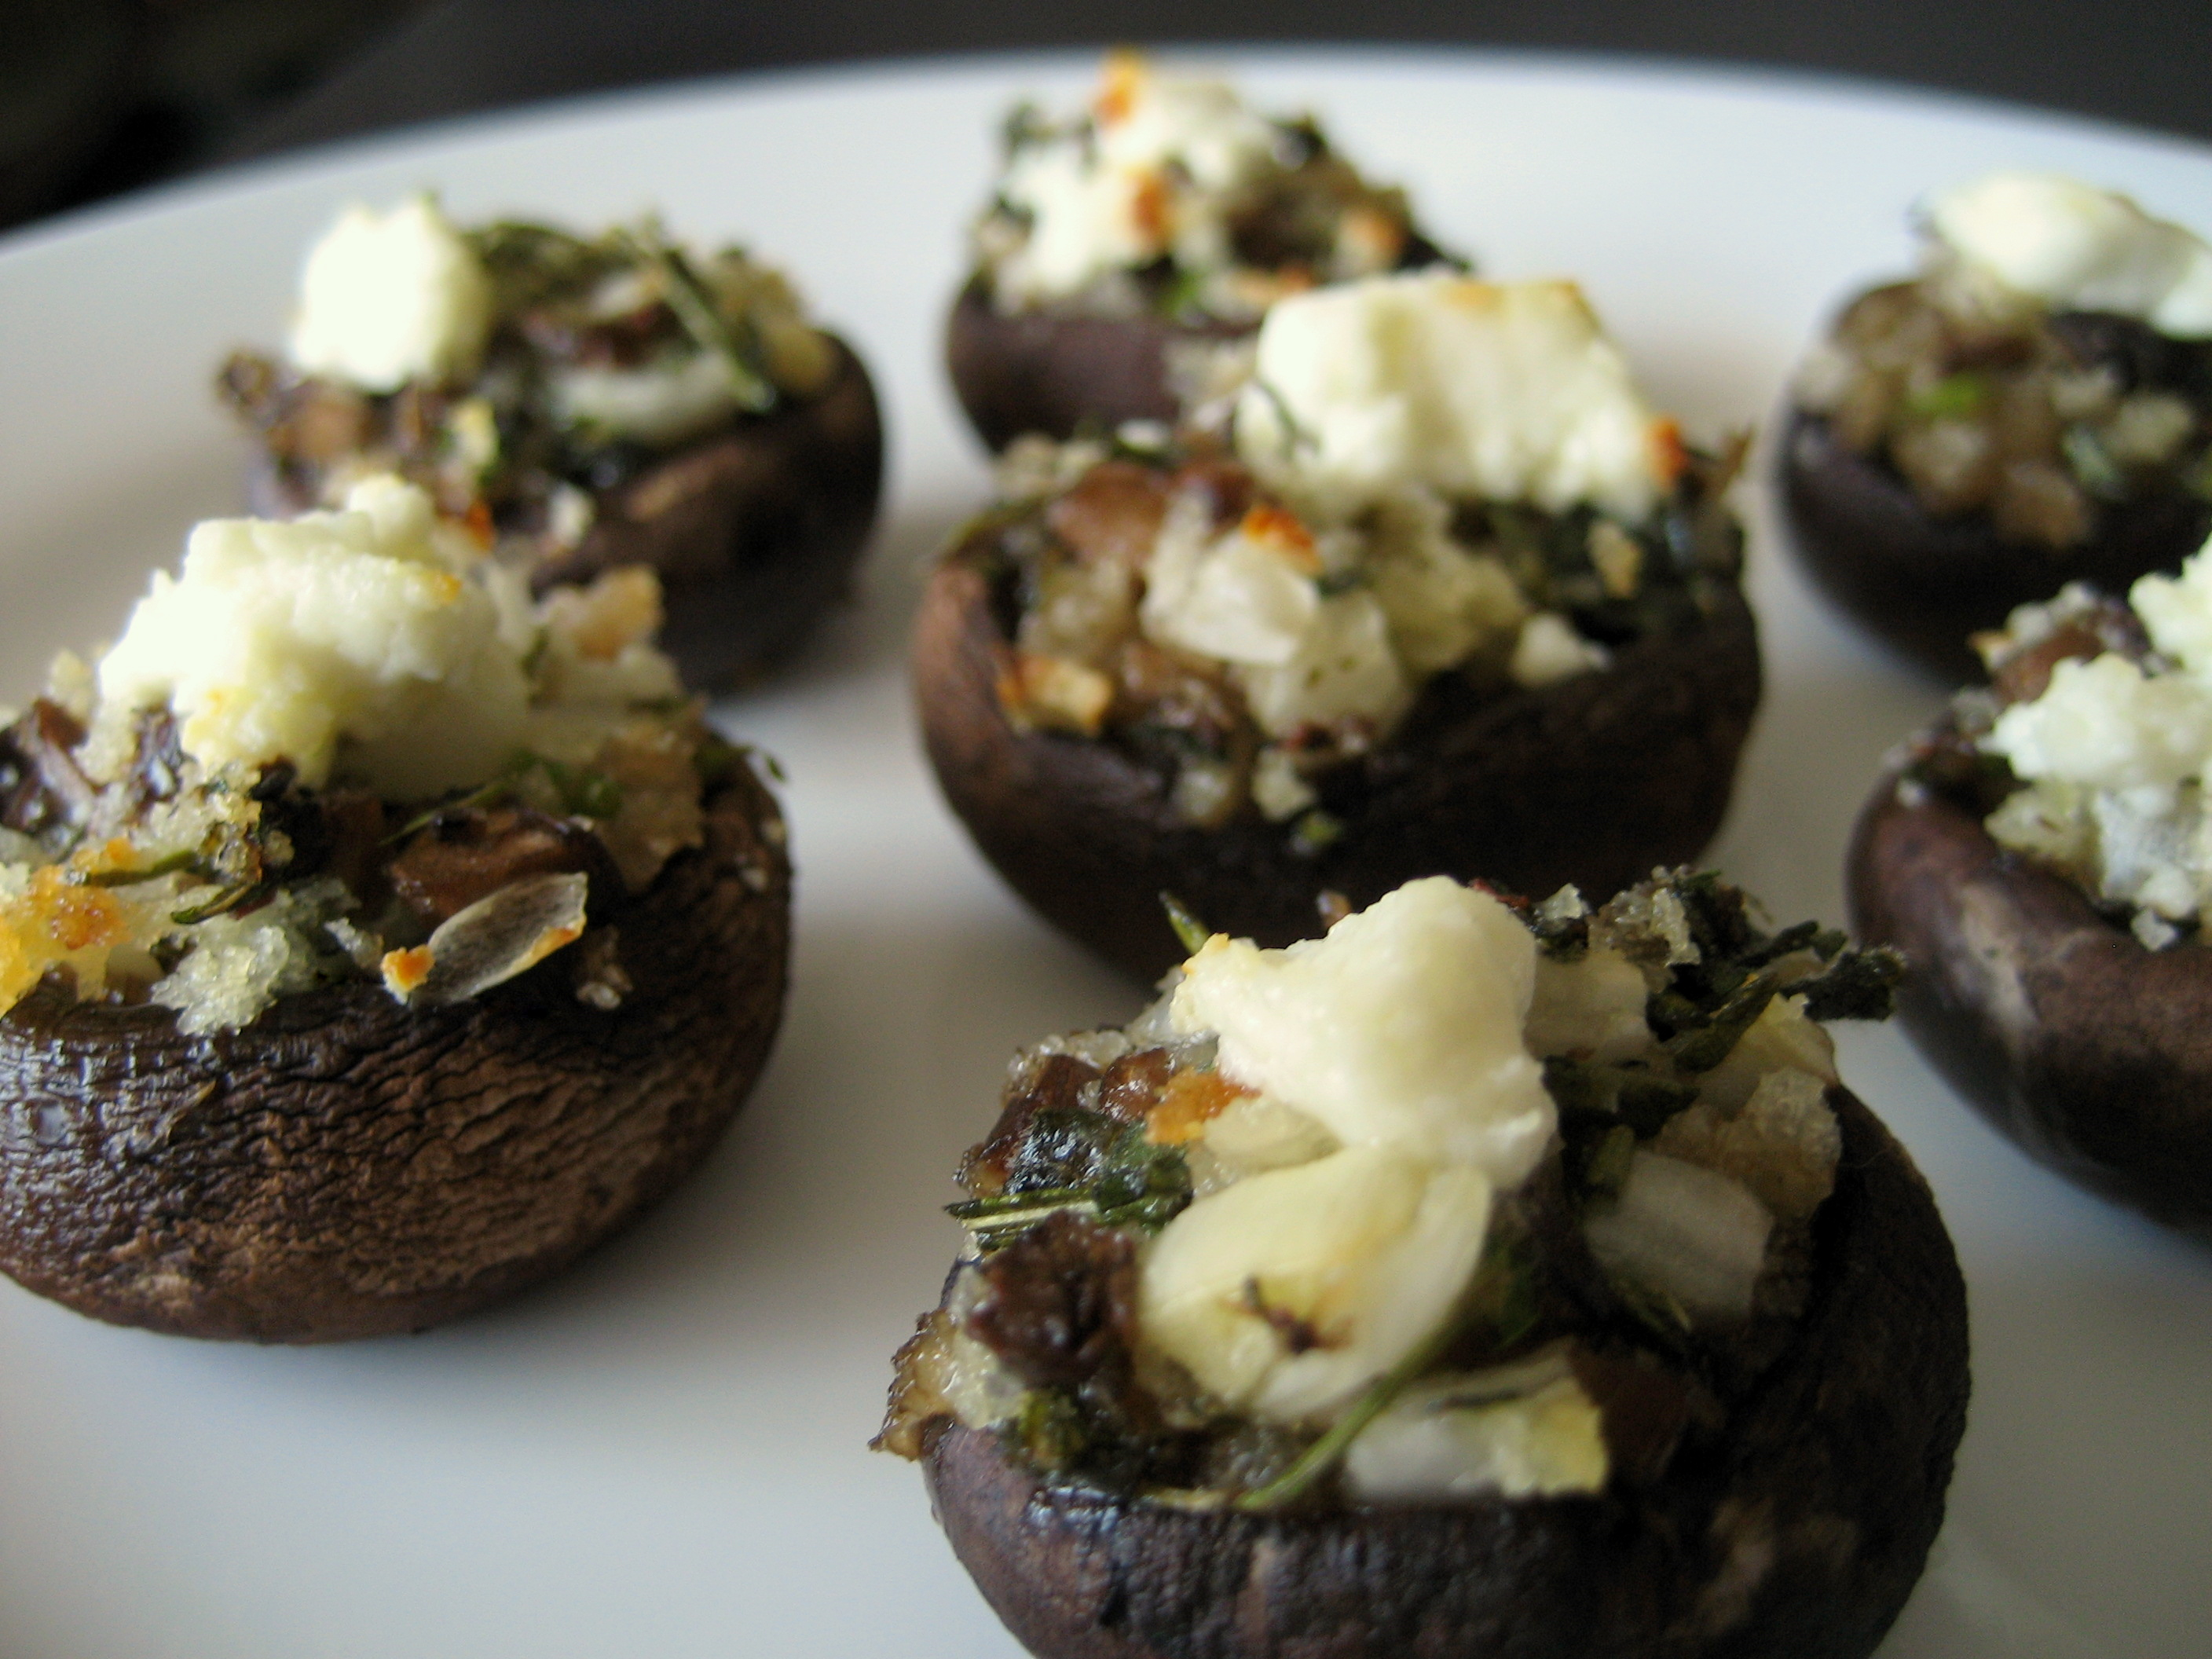 File:Stuffed mushrooms with herbs and goat cheese, June 2009.jpg ...